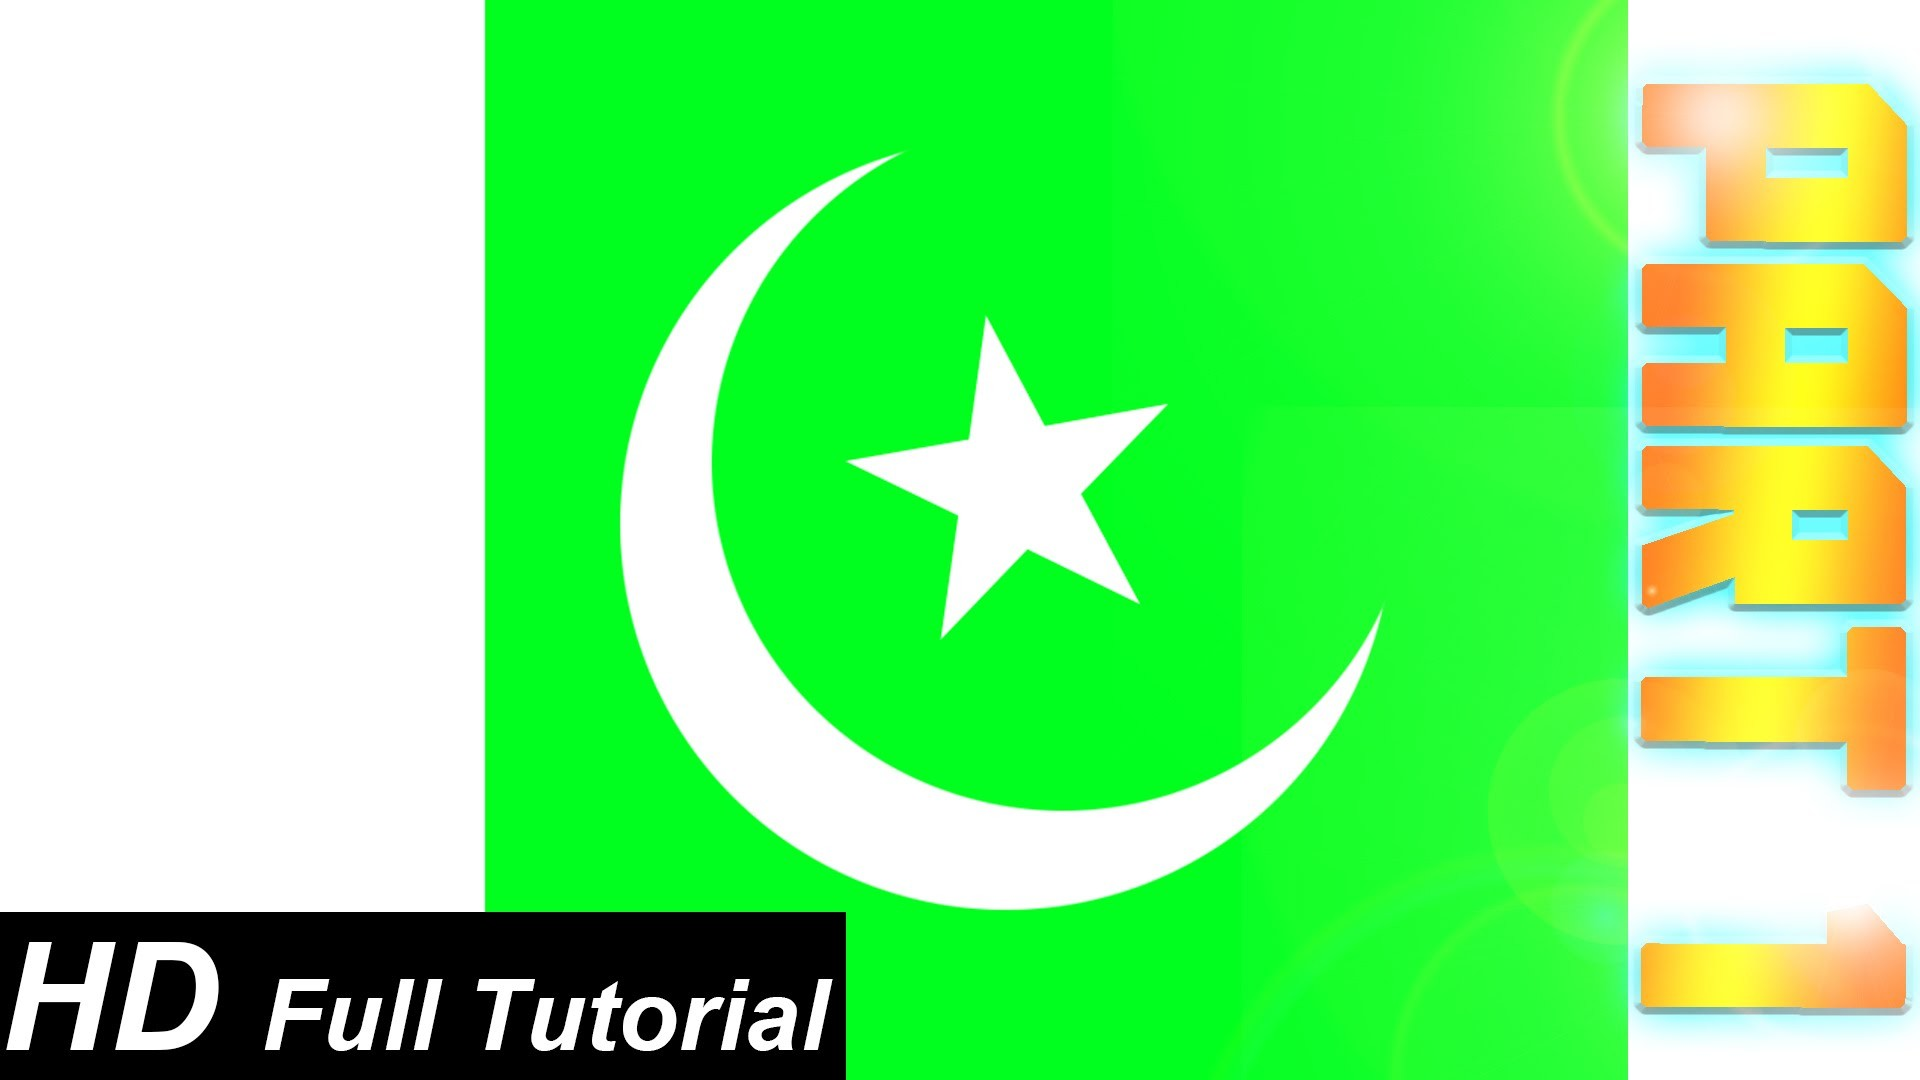 1920x1080 Photoshop Tutorial: How To Create A S. Pakistani Flag In Photoshop (In  URDU), Part 1 - YouTube